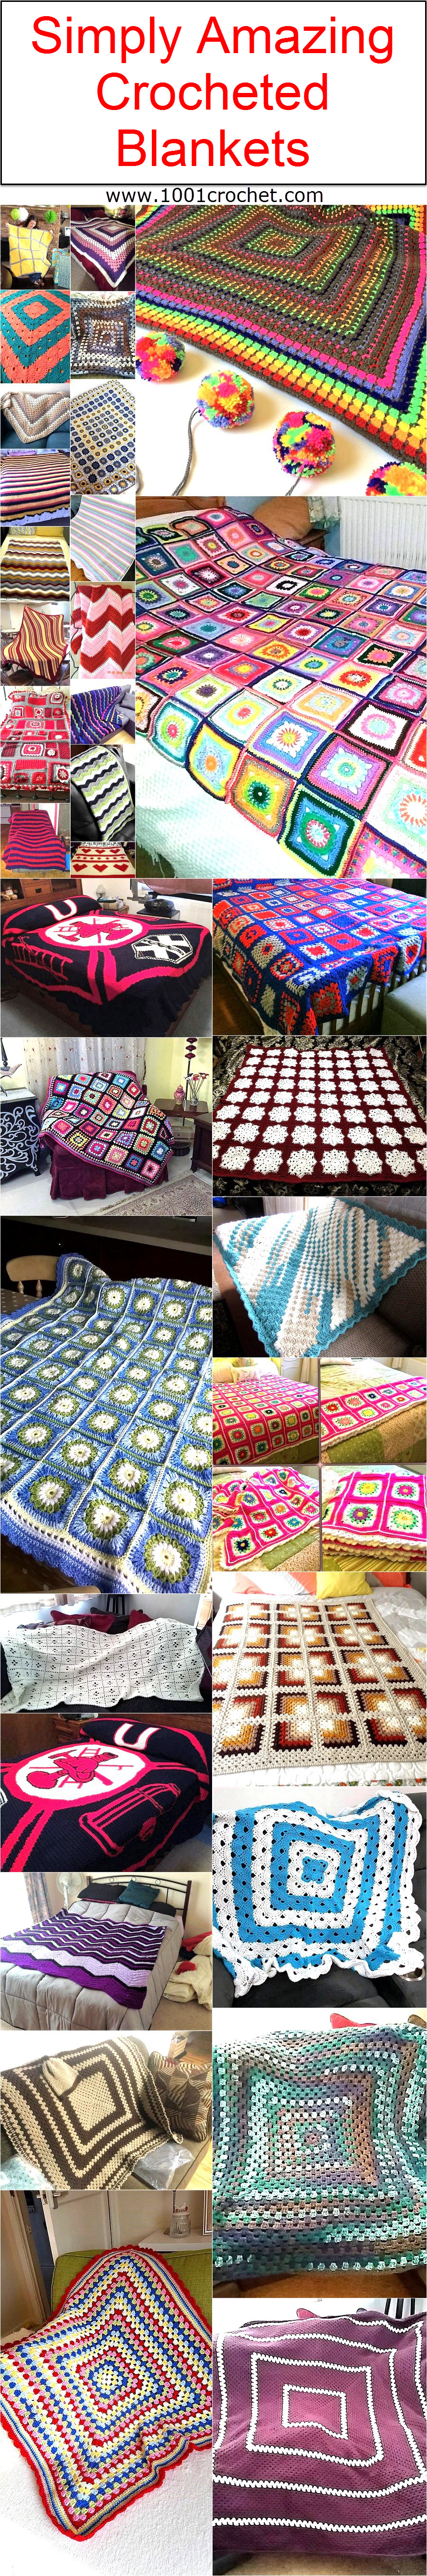 simply-amazing-crocheted-blankets